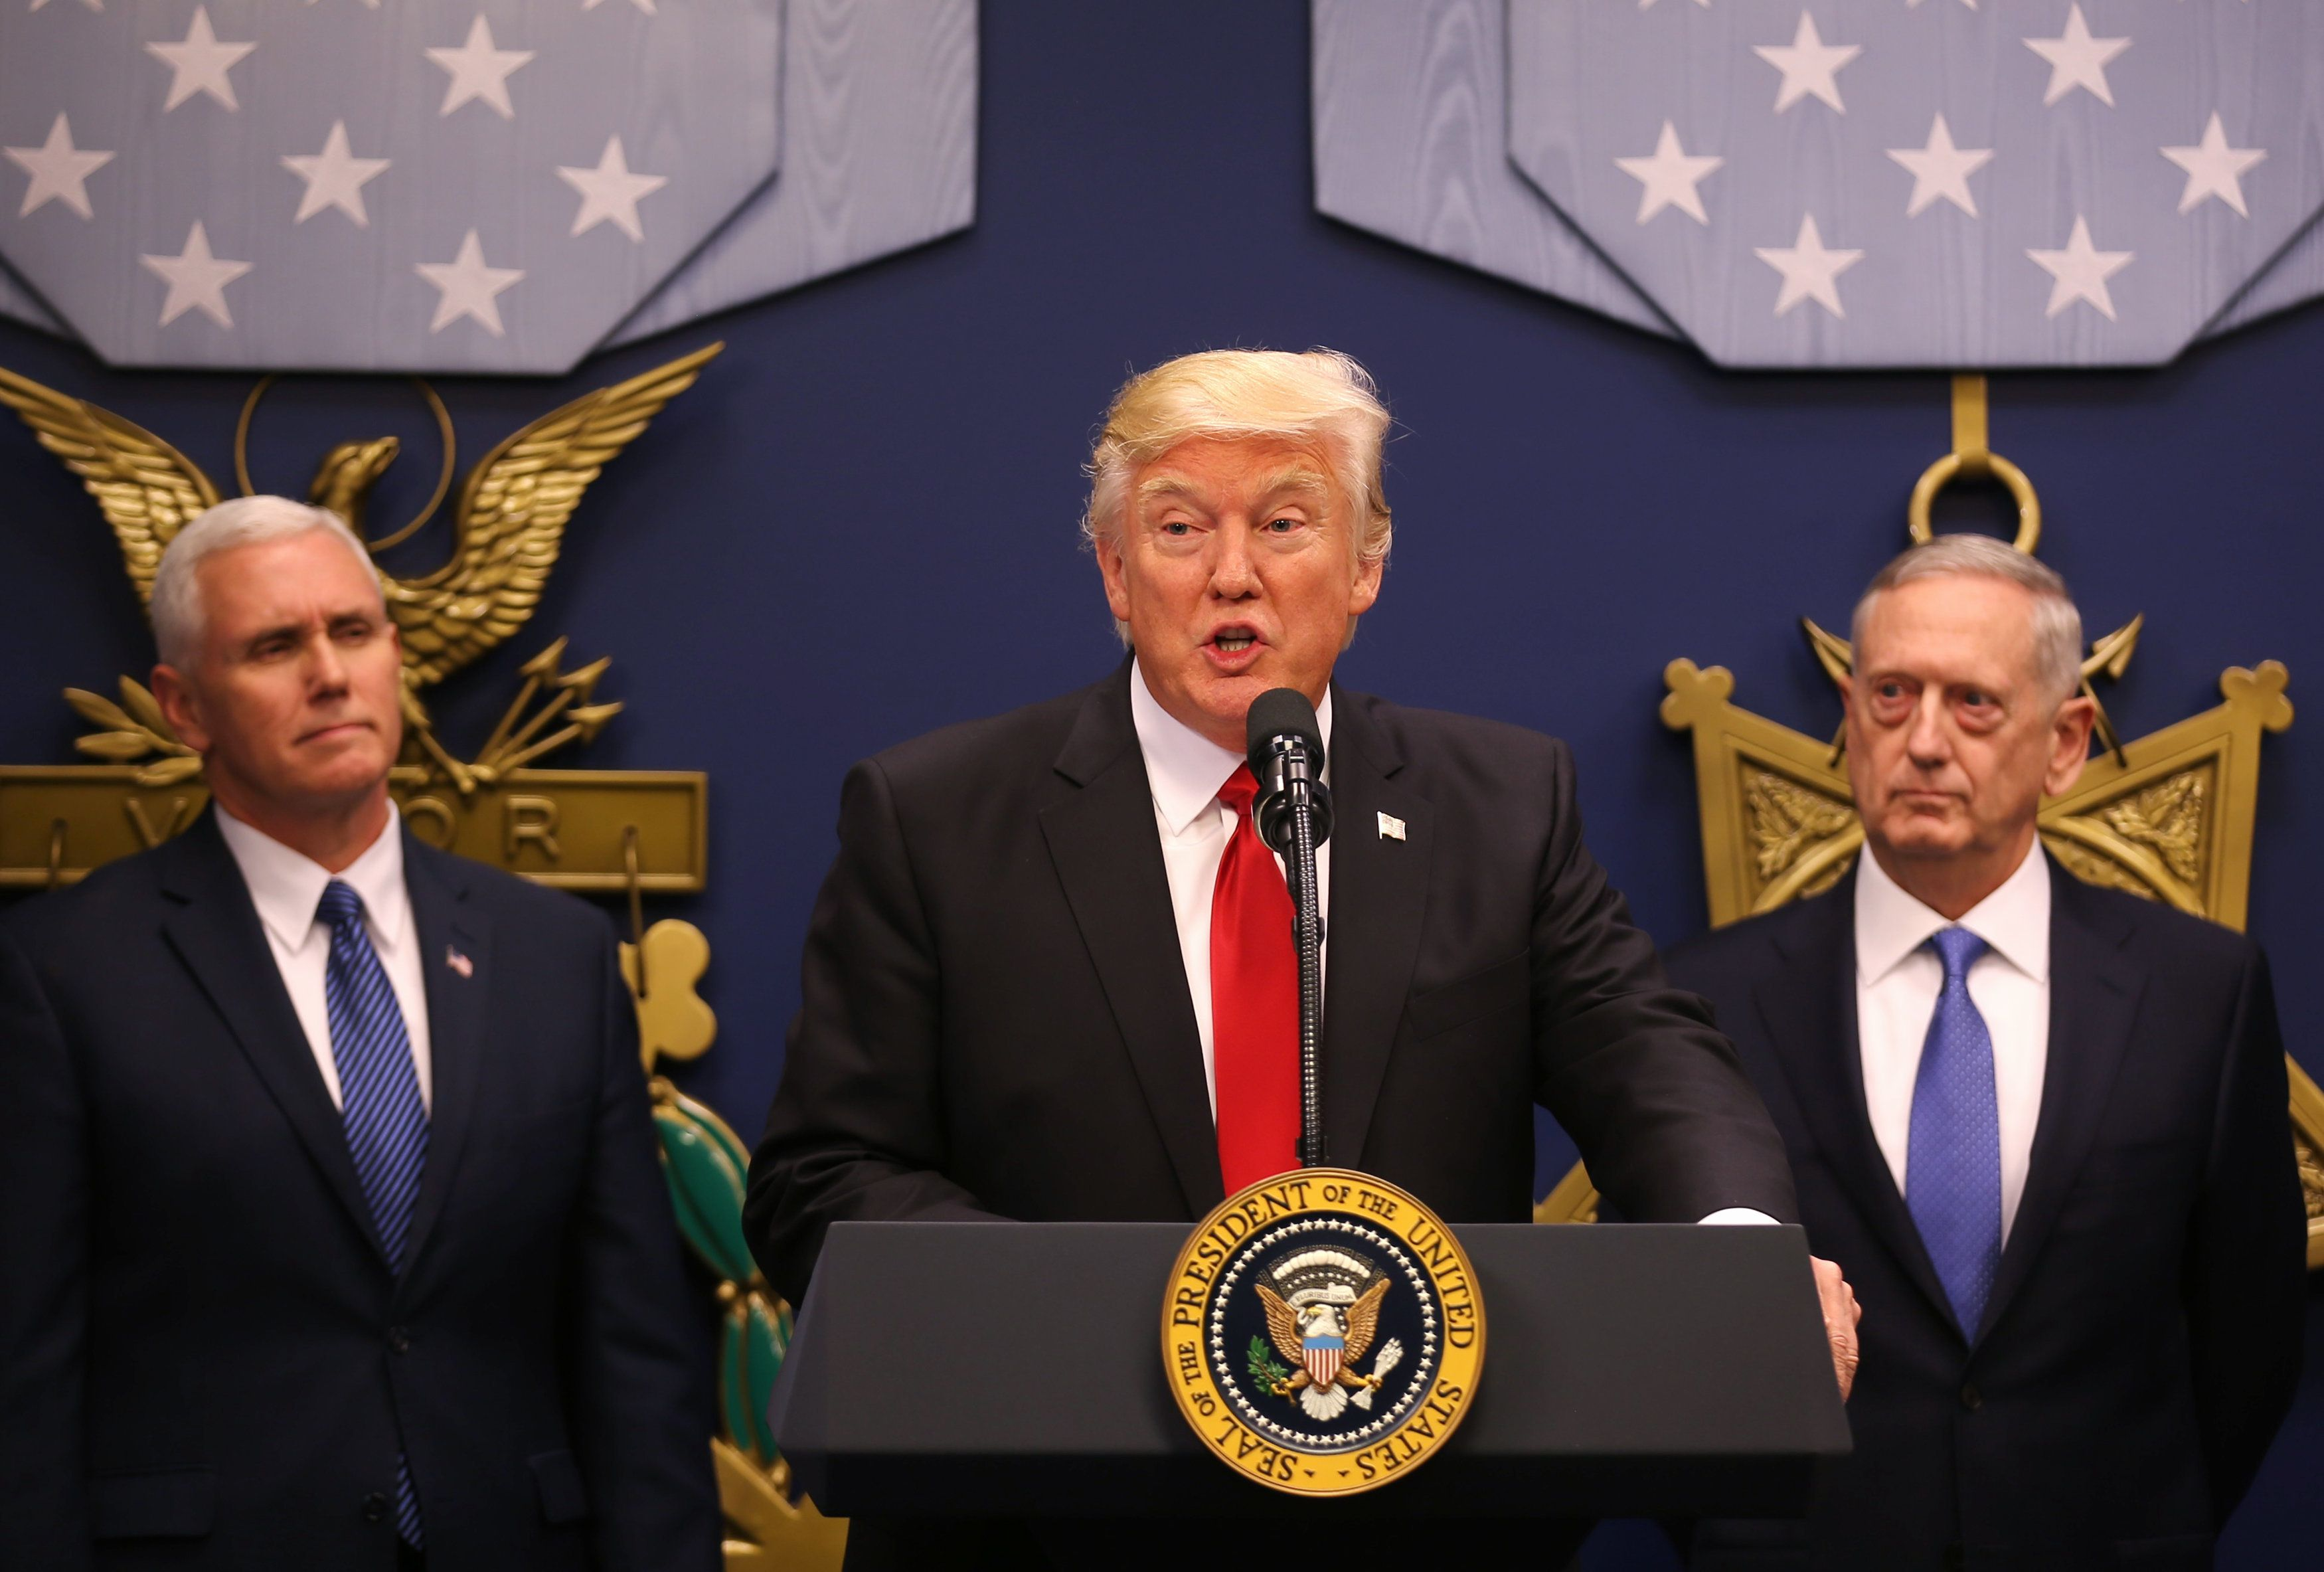 Trump's Executive Order Is Already Hurting Refugees, Muslims And